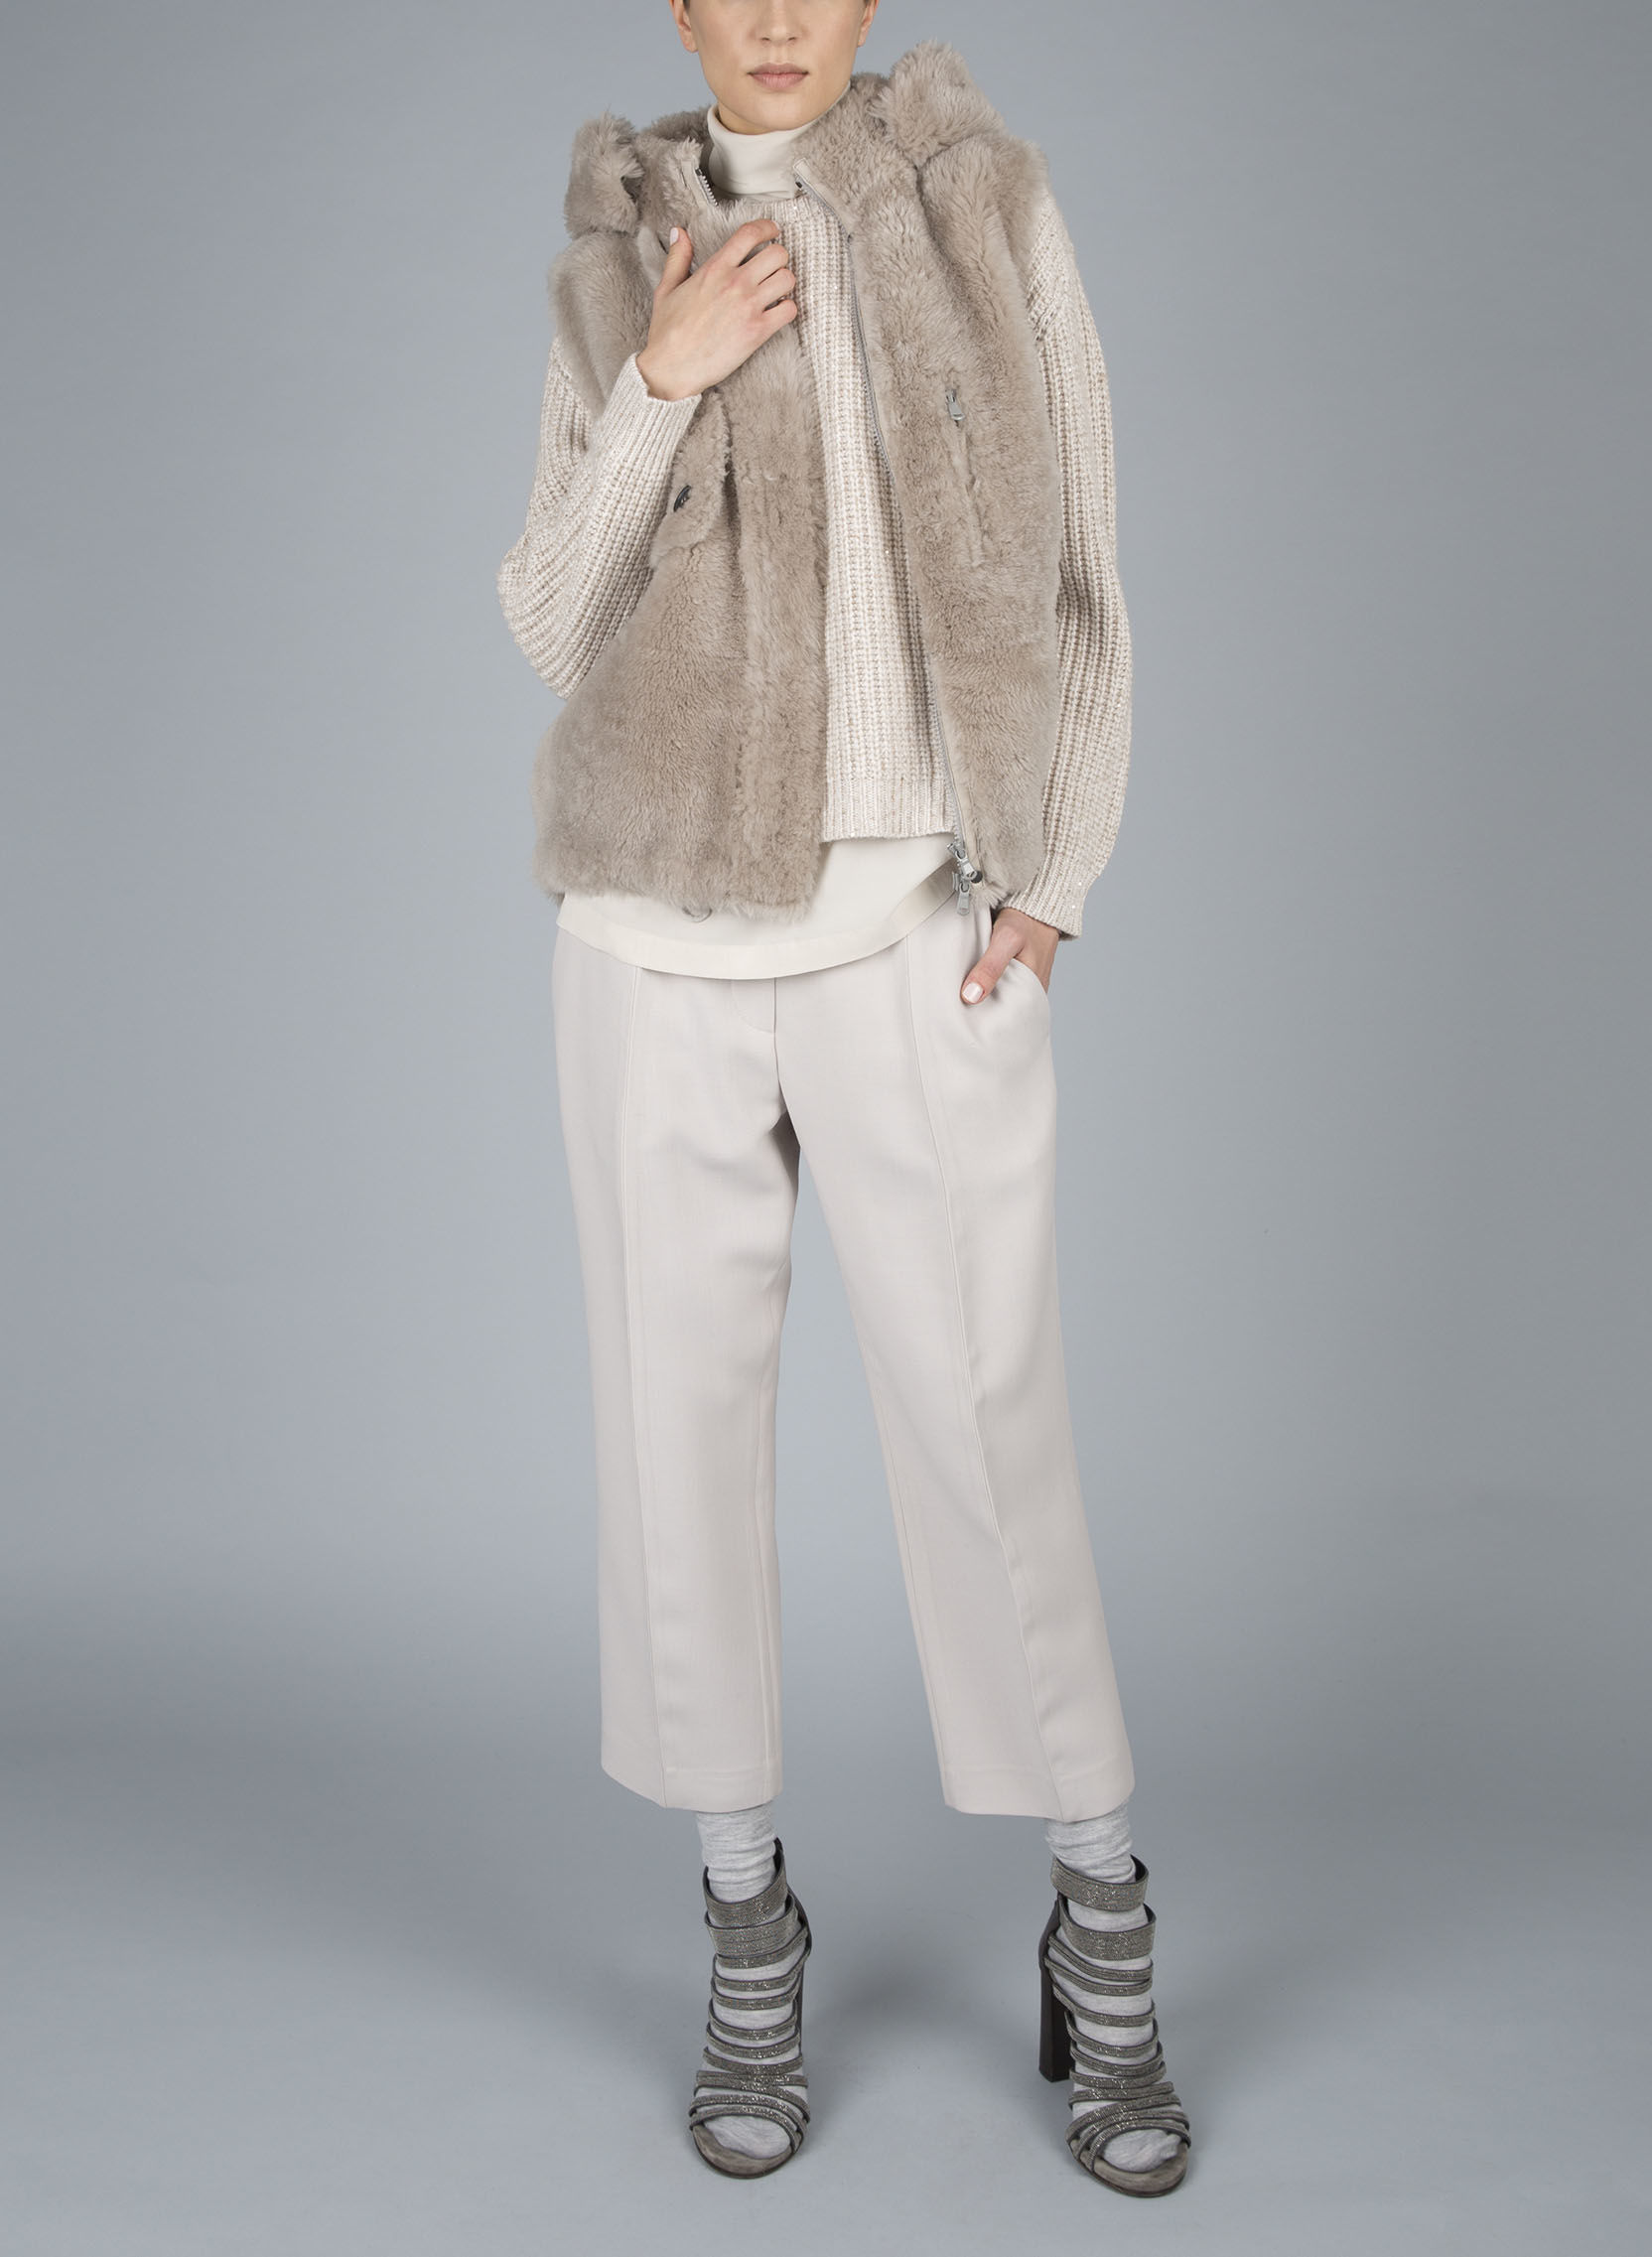 Maybe you are a MINIMALIST. Do you like to wear neutrals and keep your color scheme within the same tones? This may be your ticket. Remember you can be a MINIMALIST and still wear fur and funky shoes! Brunello Cucinelli's designs shown here are always within the MINIMALIST spectrum.